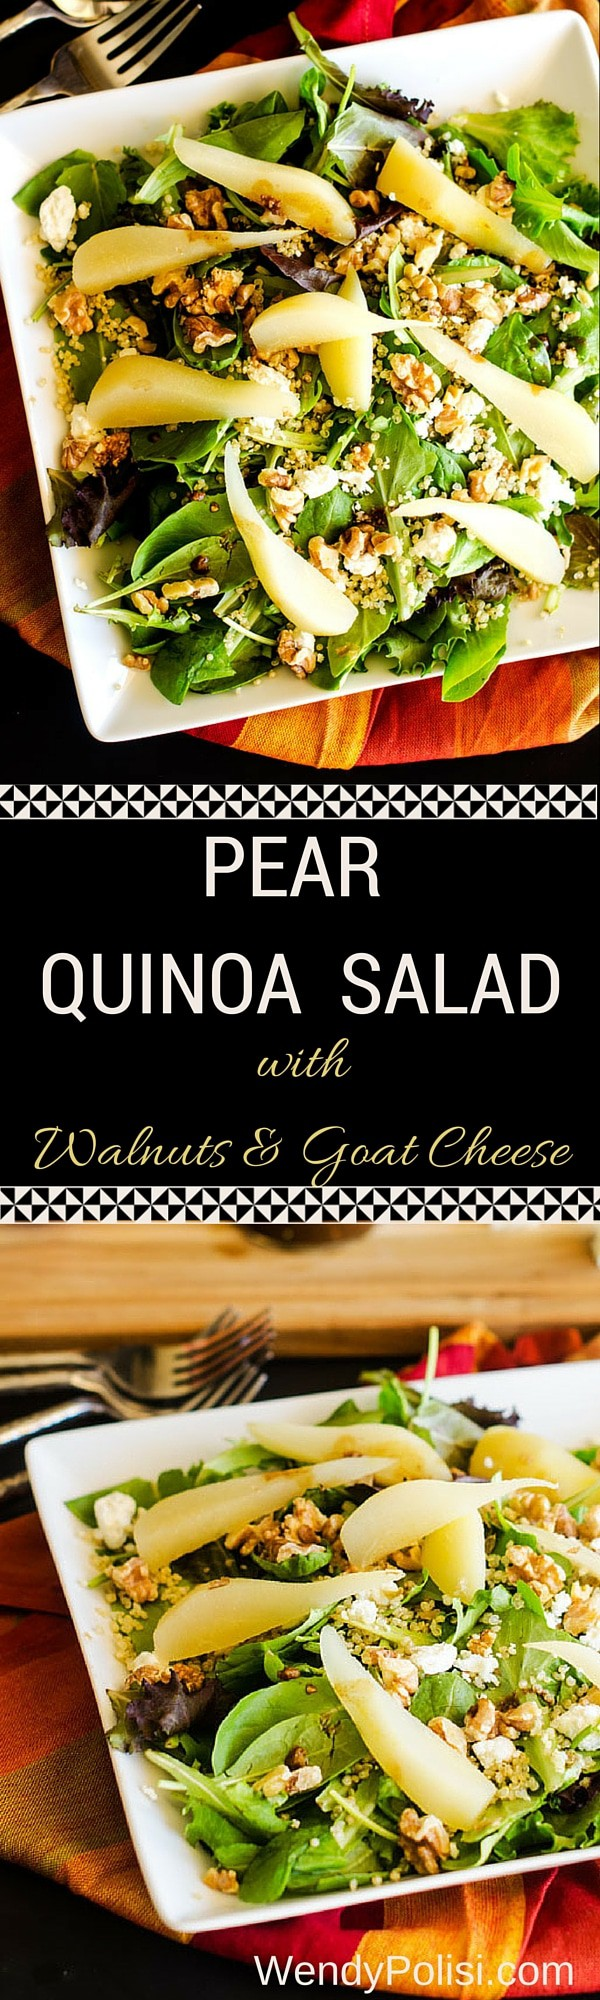 Pear Quinoa Salad with Walnuts and Goat Cheese